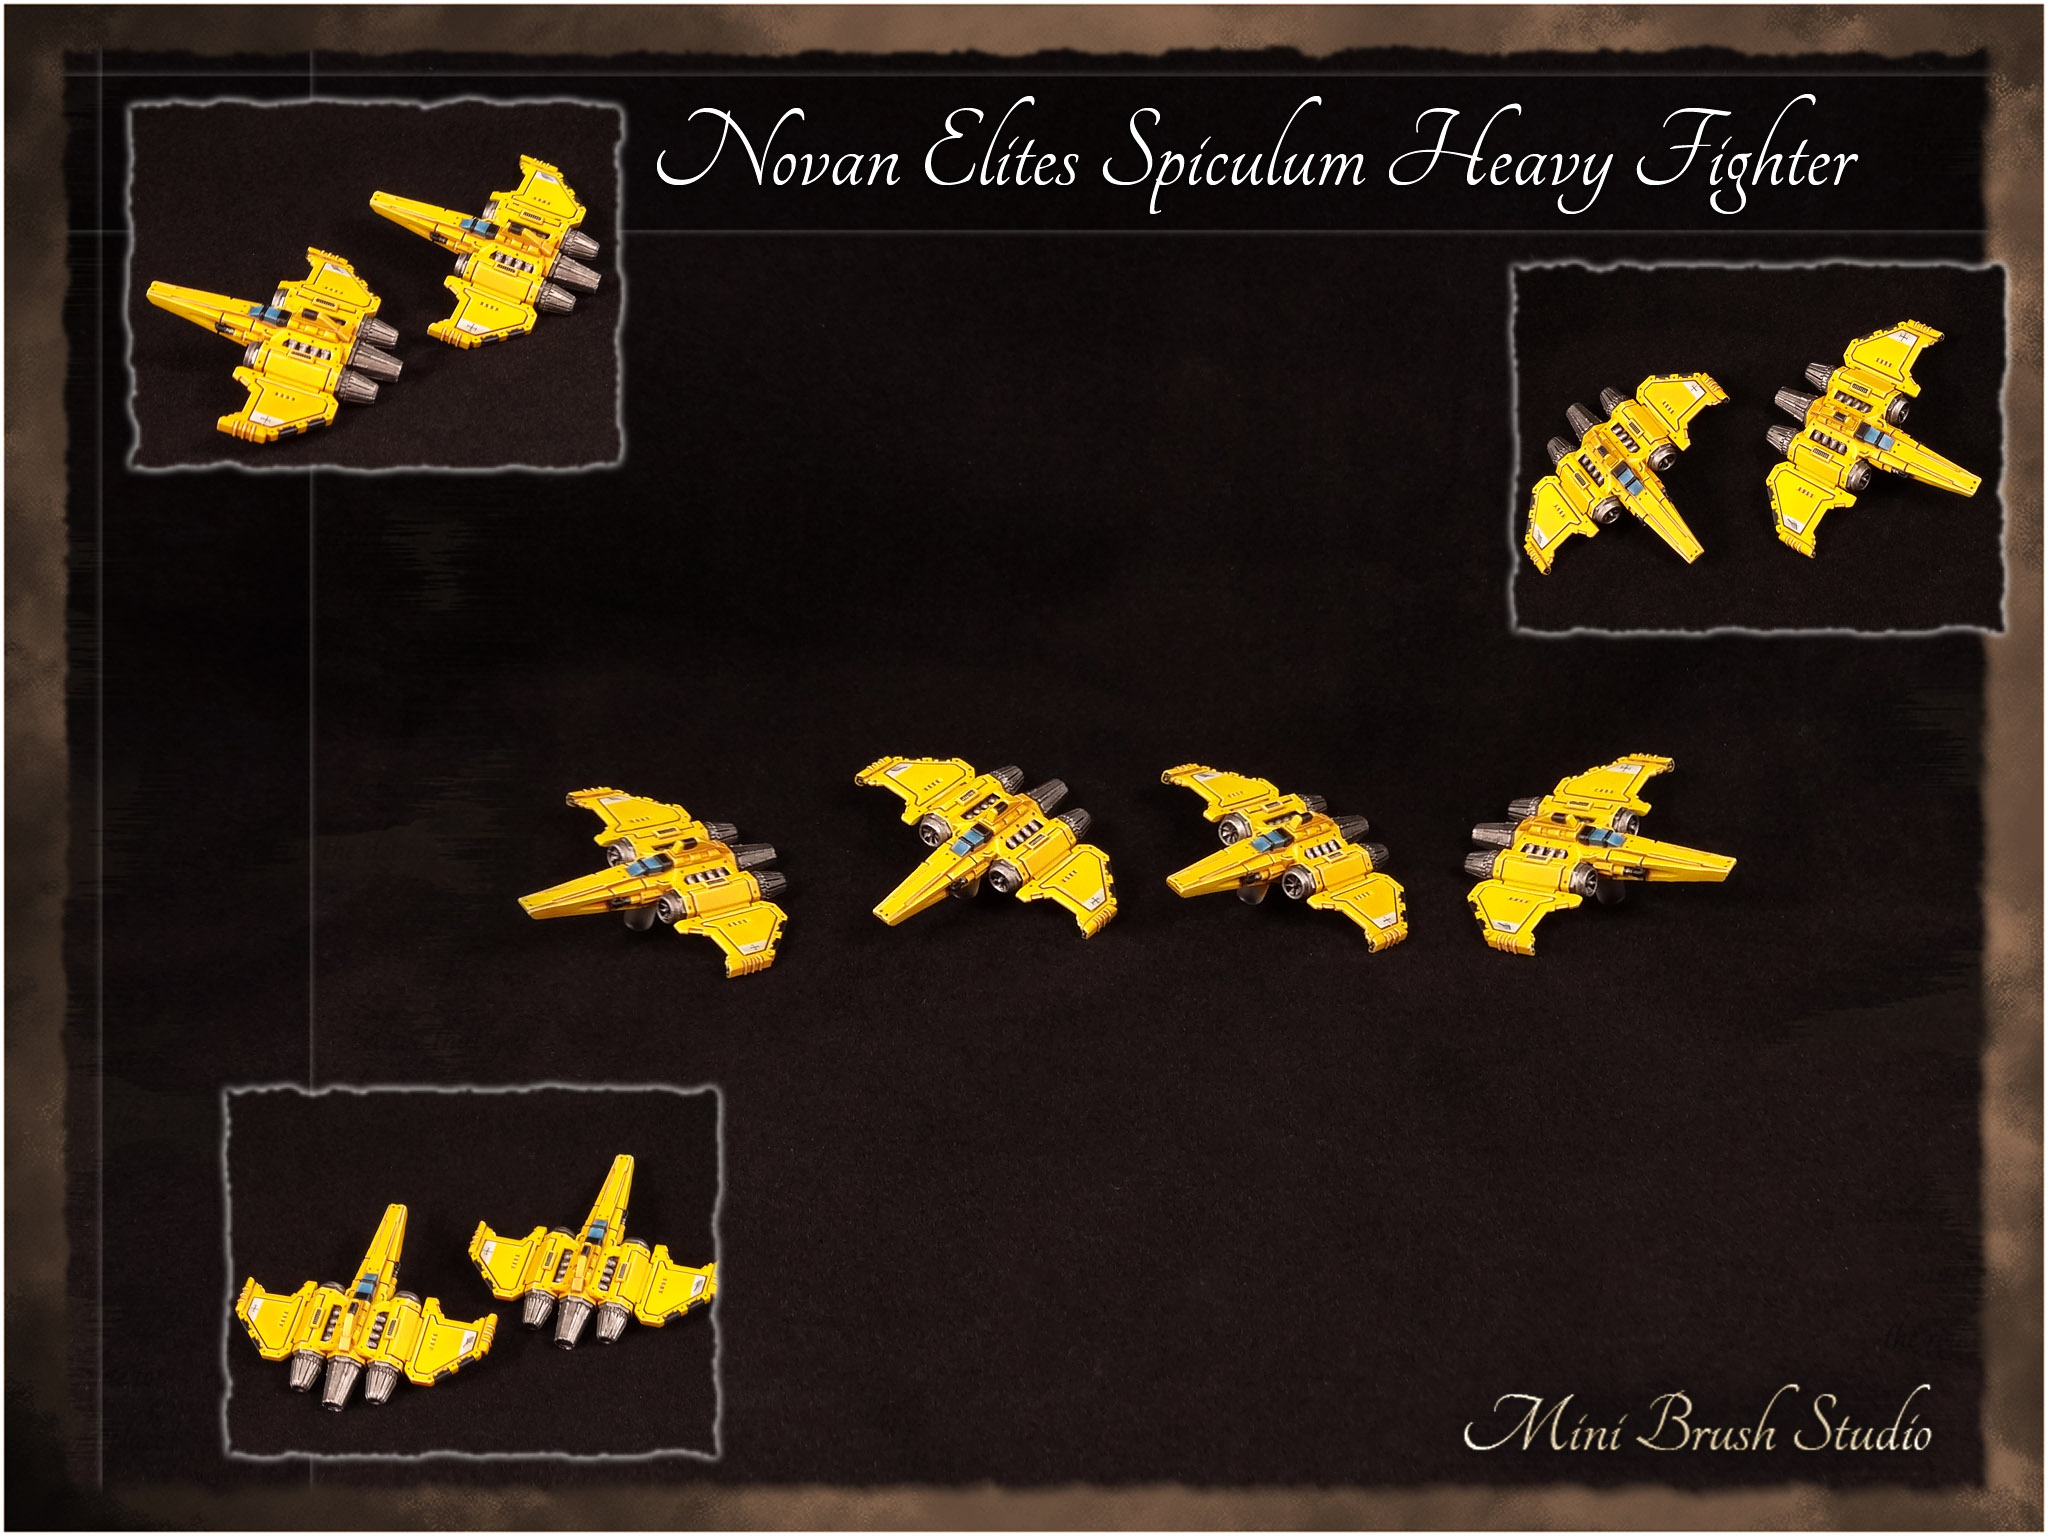 Novan Elites Spiculum Heavy Fighter 1 v7.00.jpg